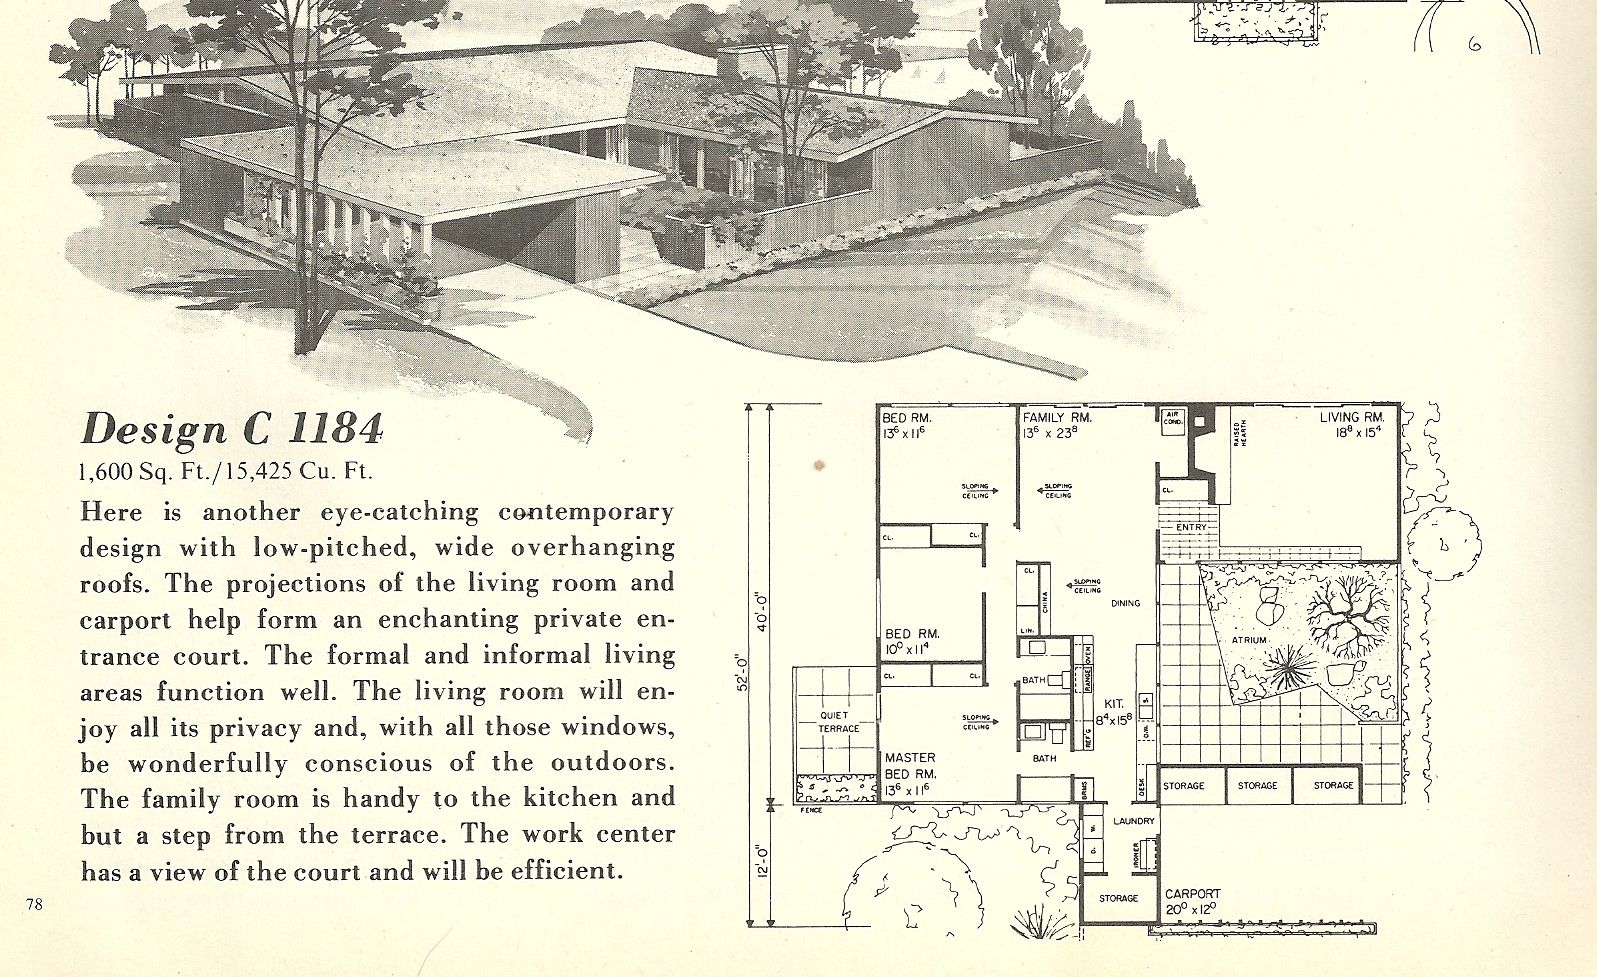 Mid century house plans house plans 1960s spanish style and mid century modern vintage house